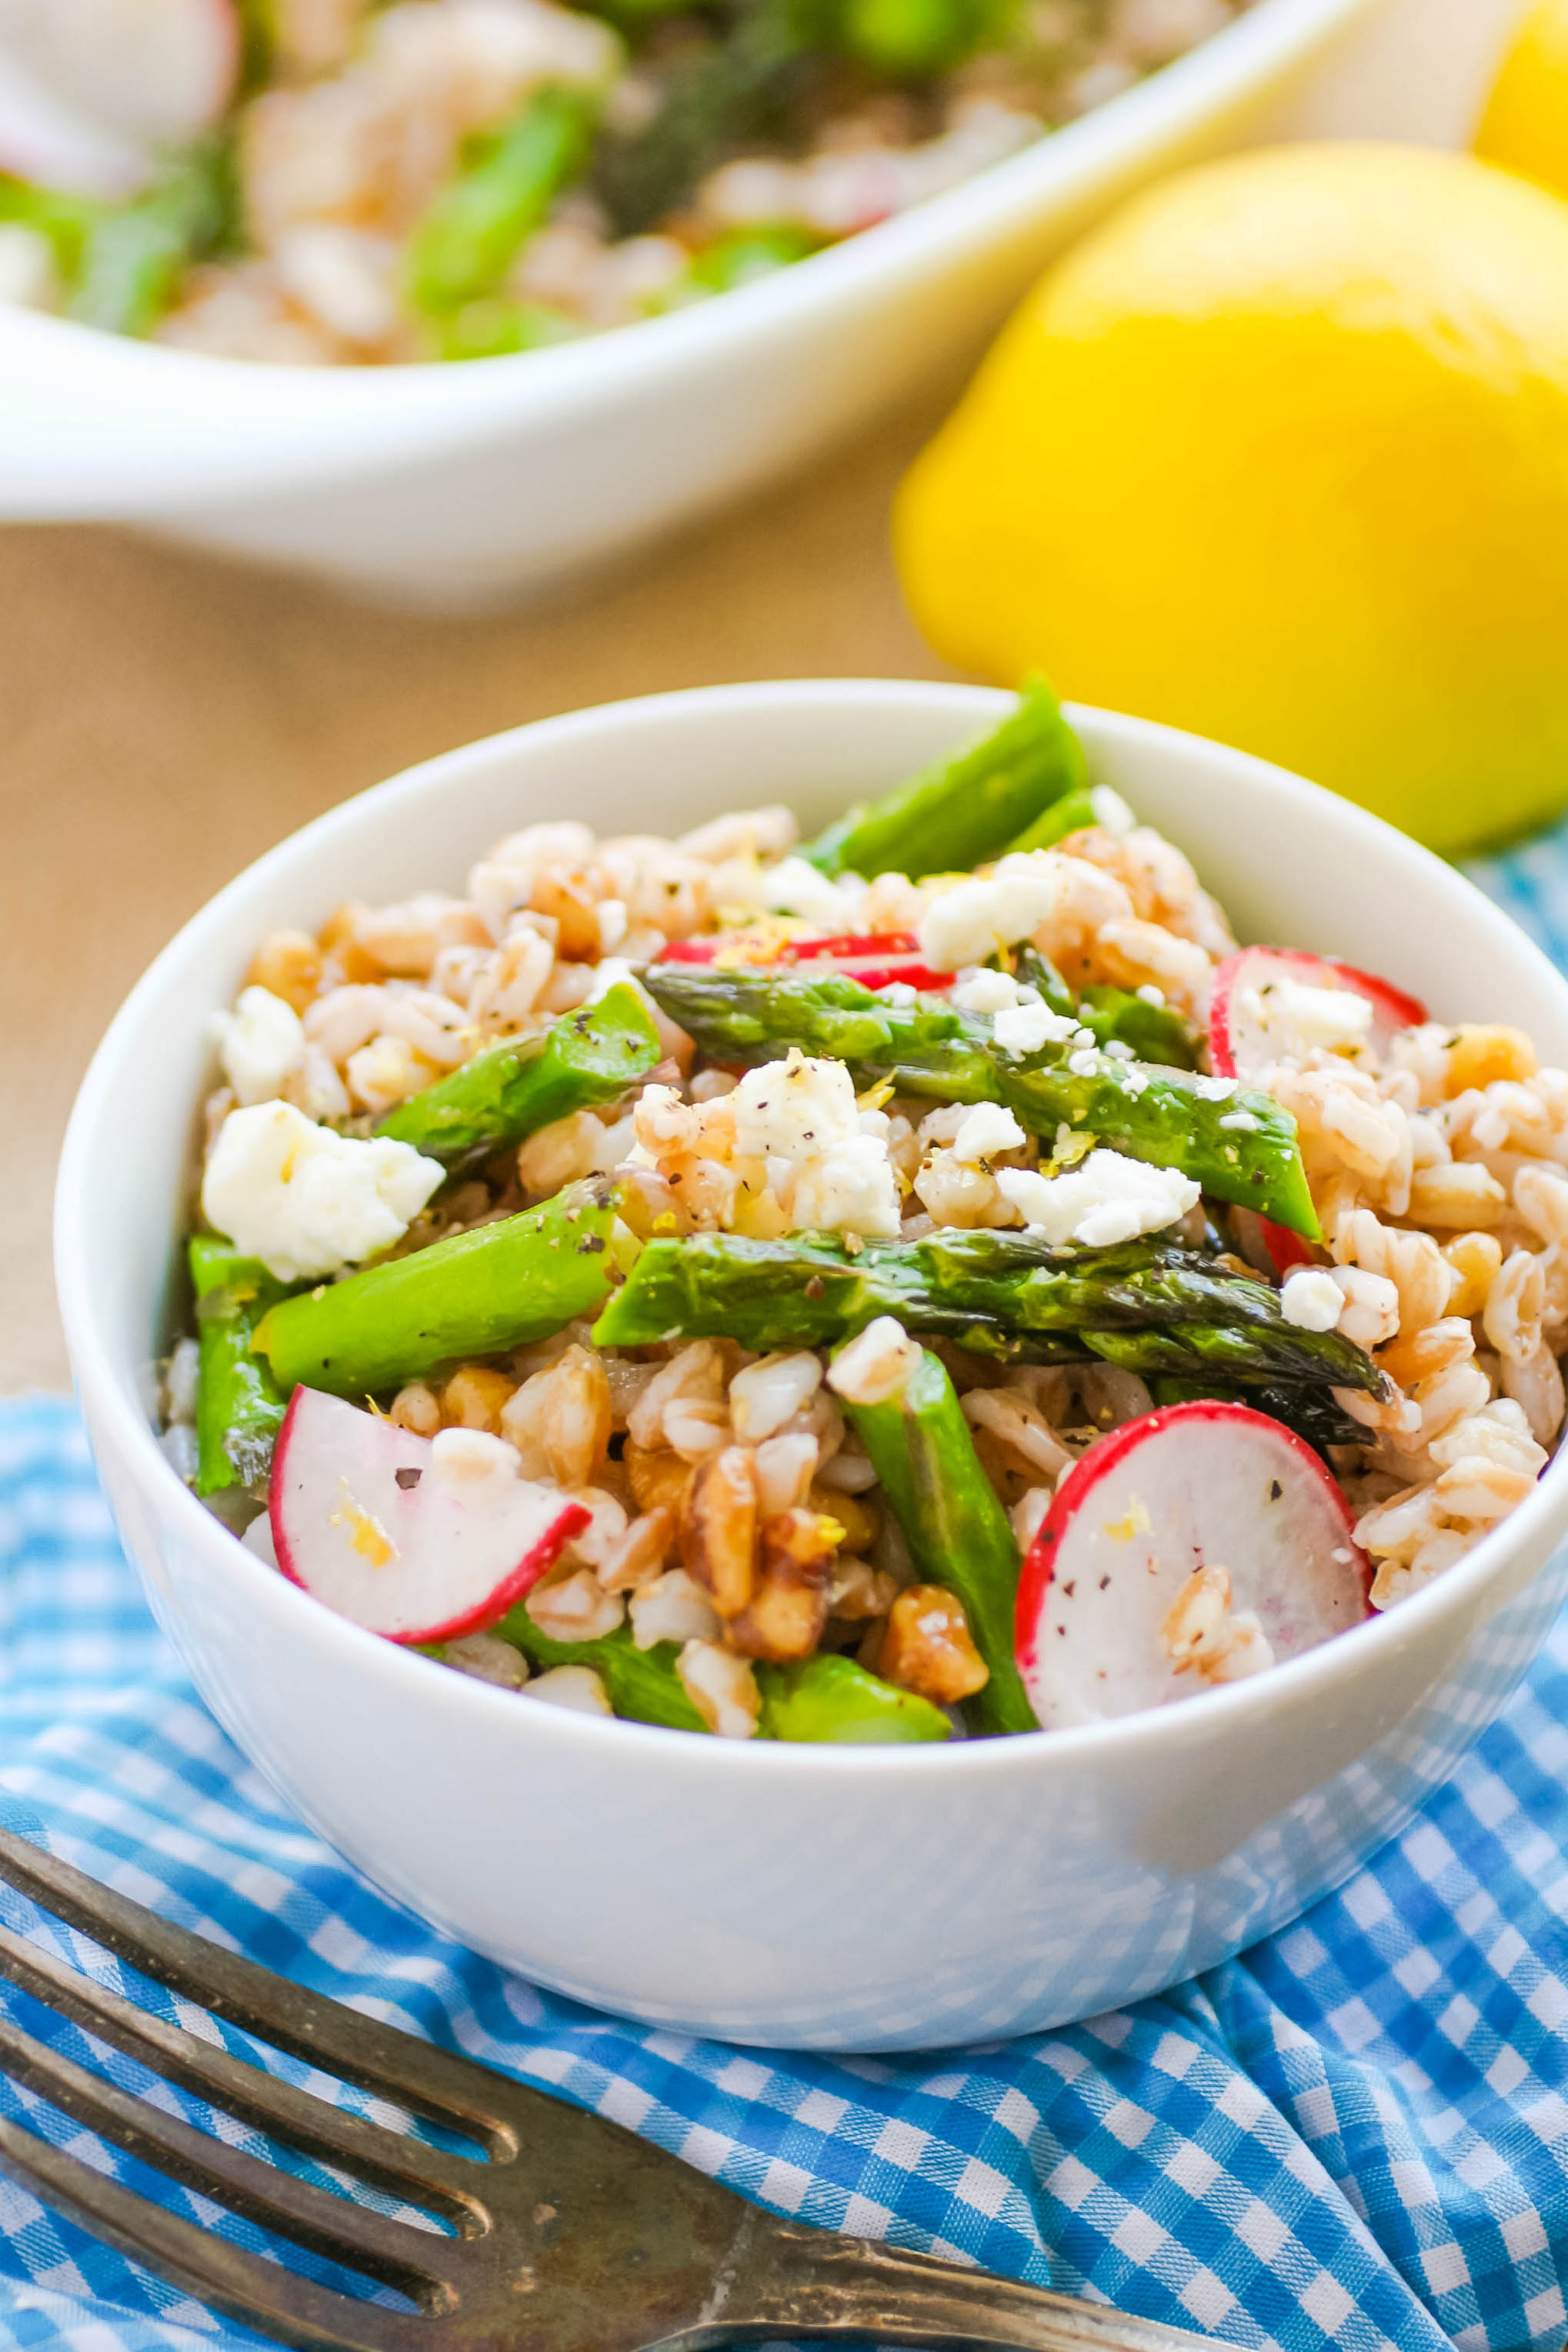 Farro Salad with Asparagus, Radishes & Lemon Vinaigrette is a lovely spring salad that's hearty, too. Farro Salad with Asparagus, Radishes & Lemon Vinaigrette is a delightfully hearty spring salad.